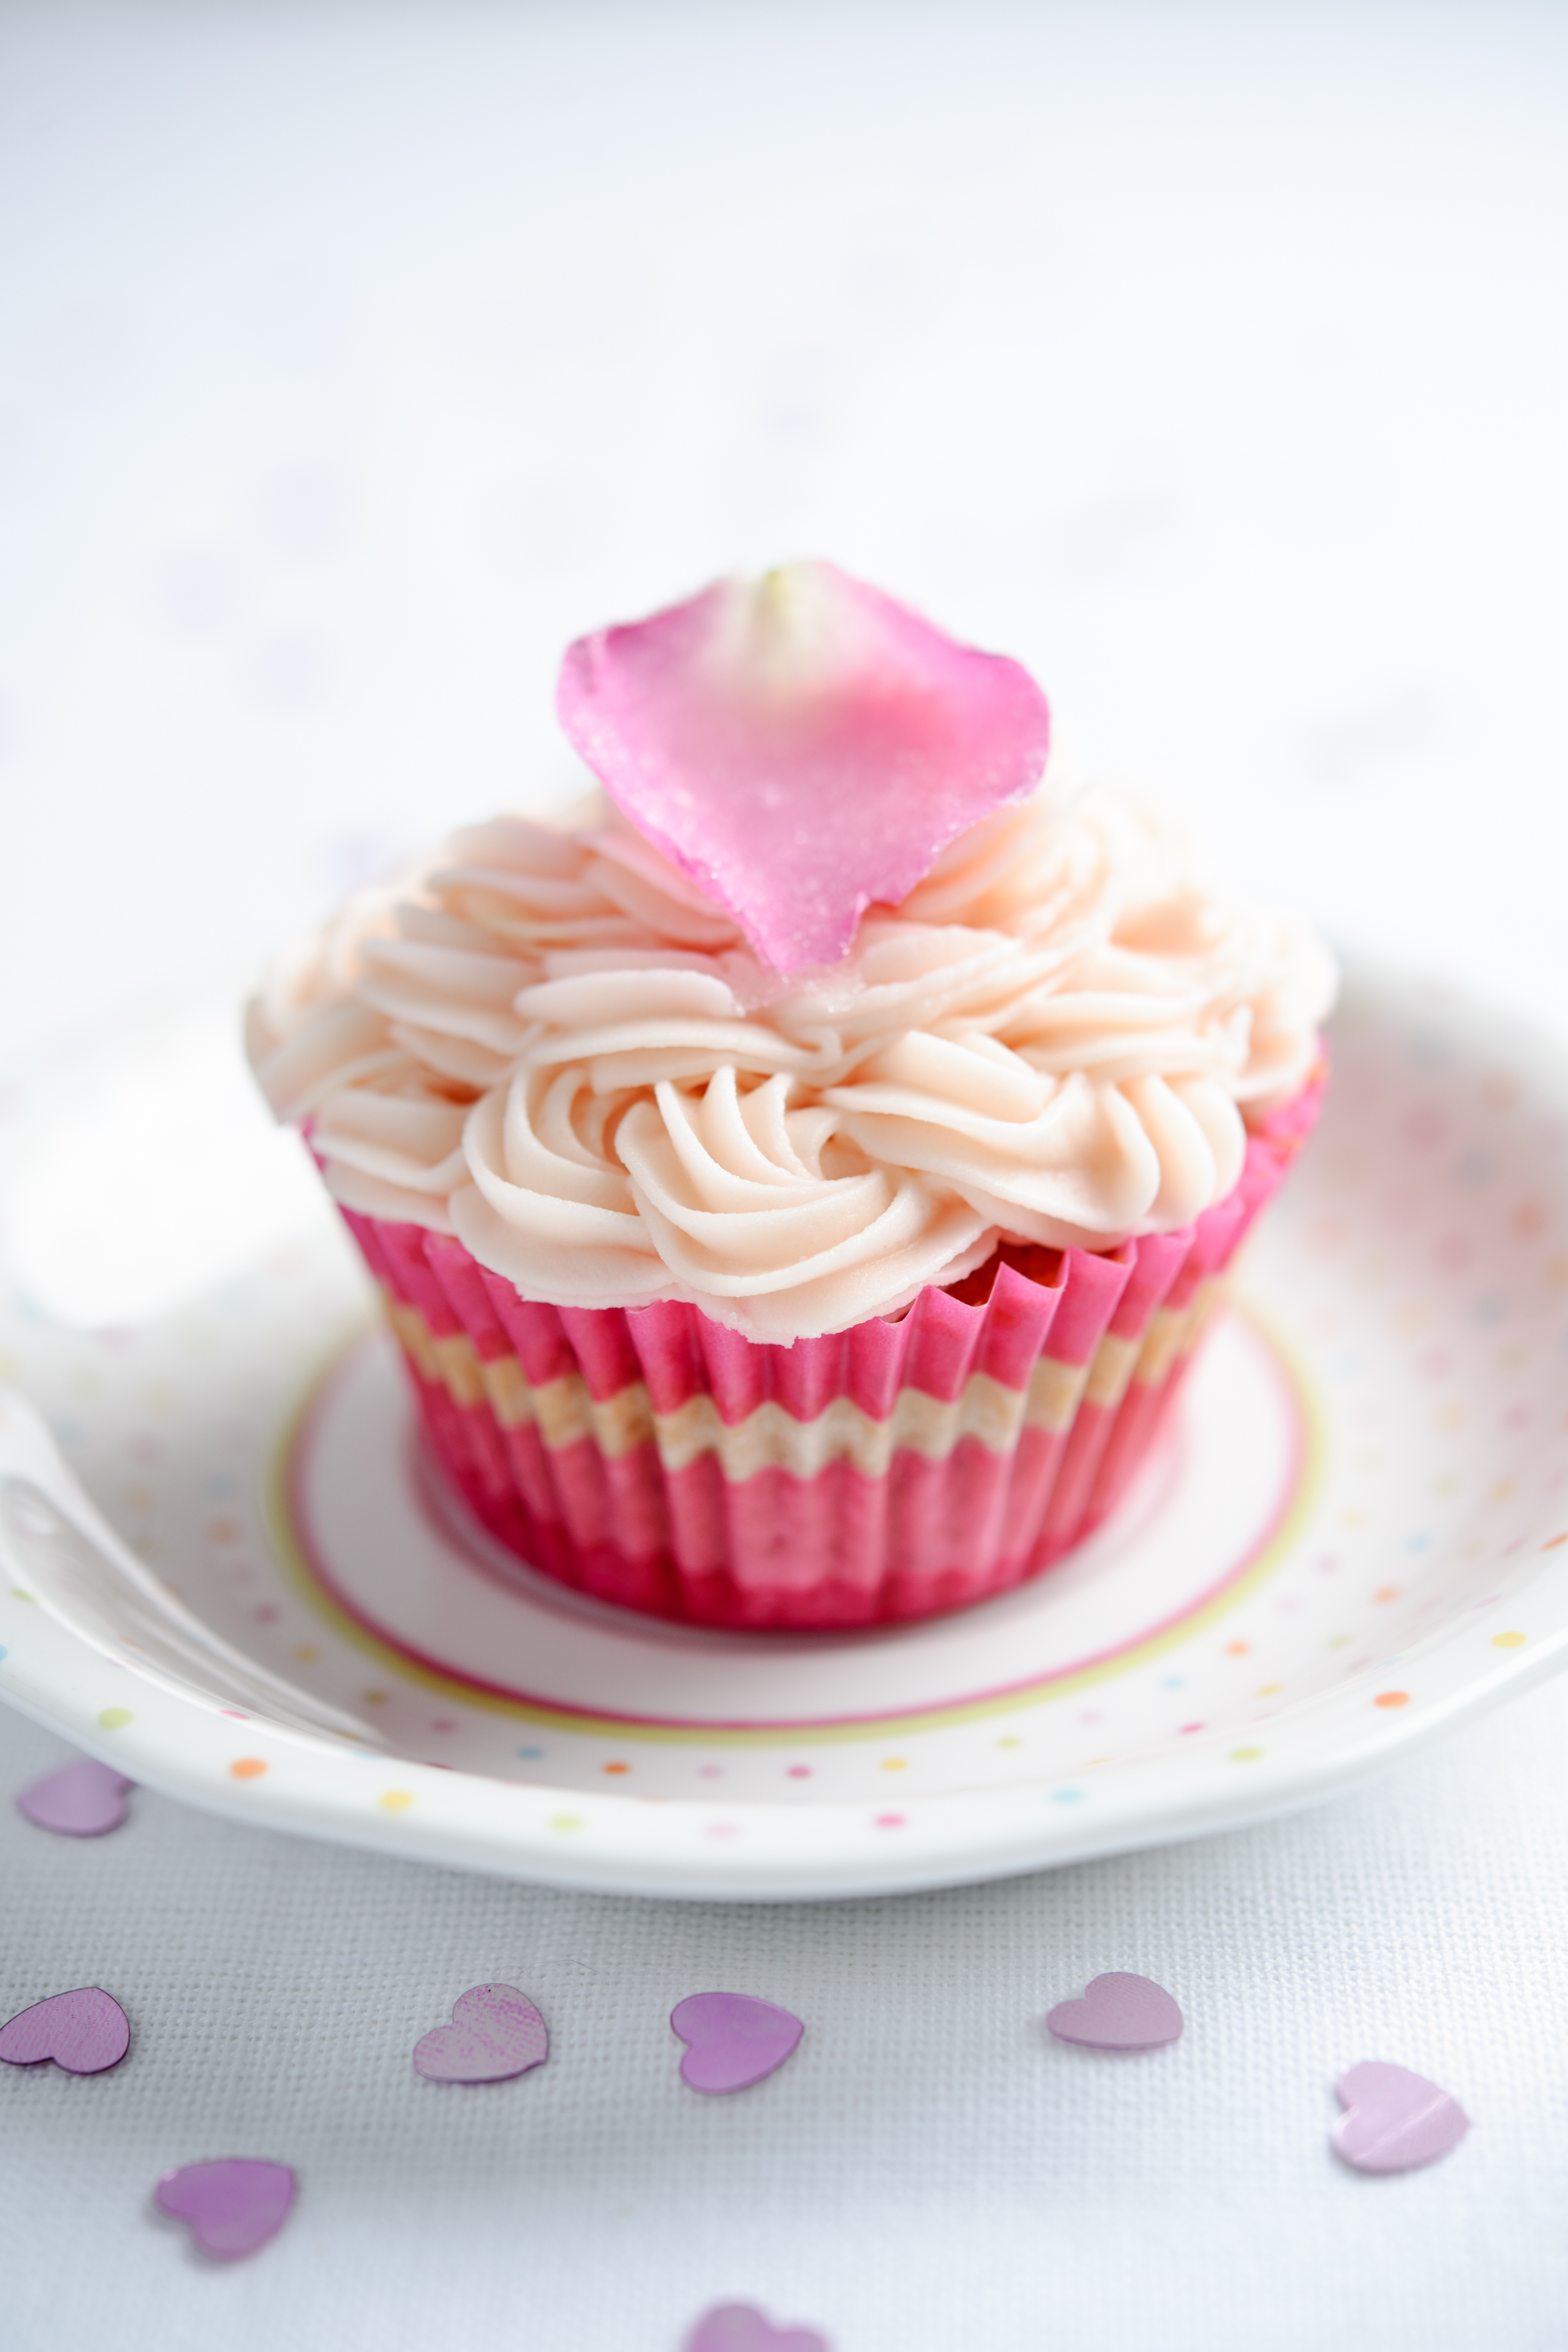 Cake With Icing Pictures : Beetroot and vanilla cup cakes with rose butter icing ...